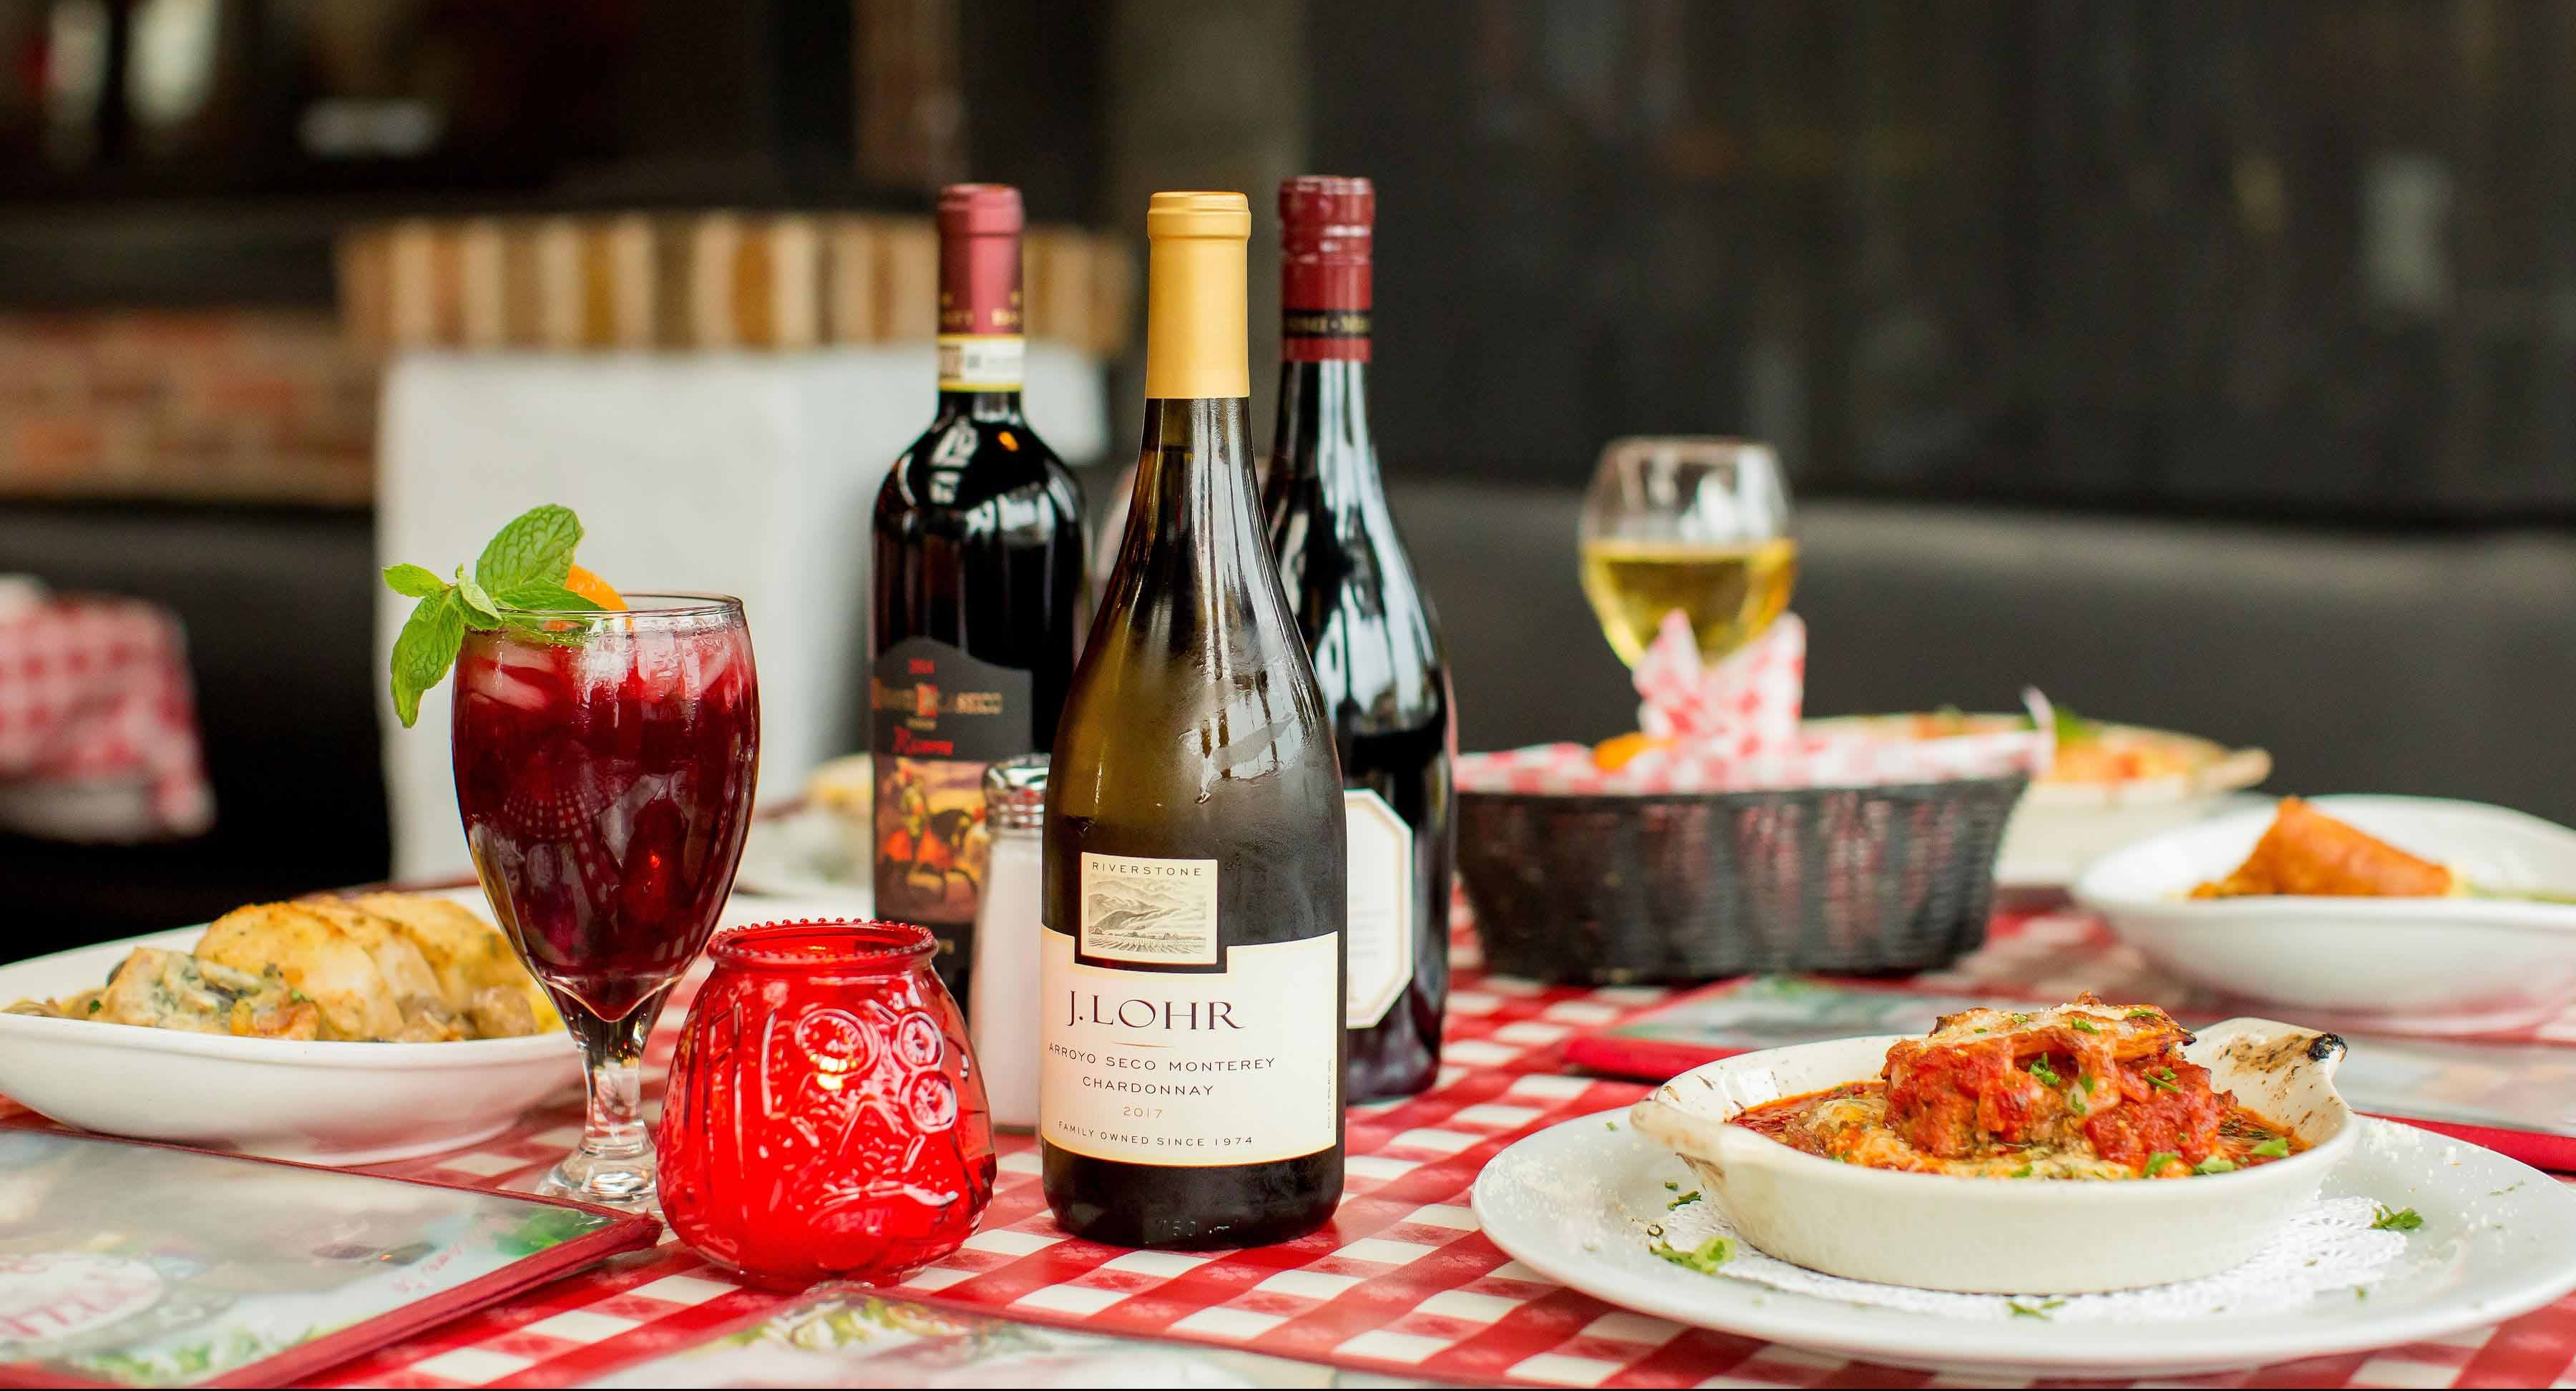 Bottles of wine and italian cuisine on red and white checkered tablecloth.